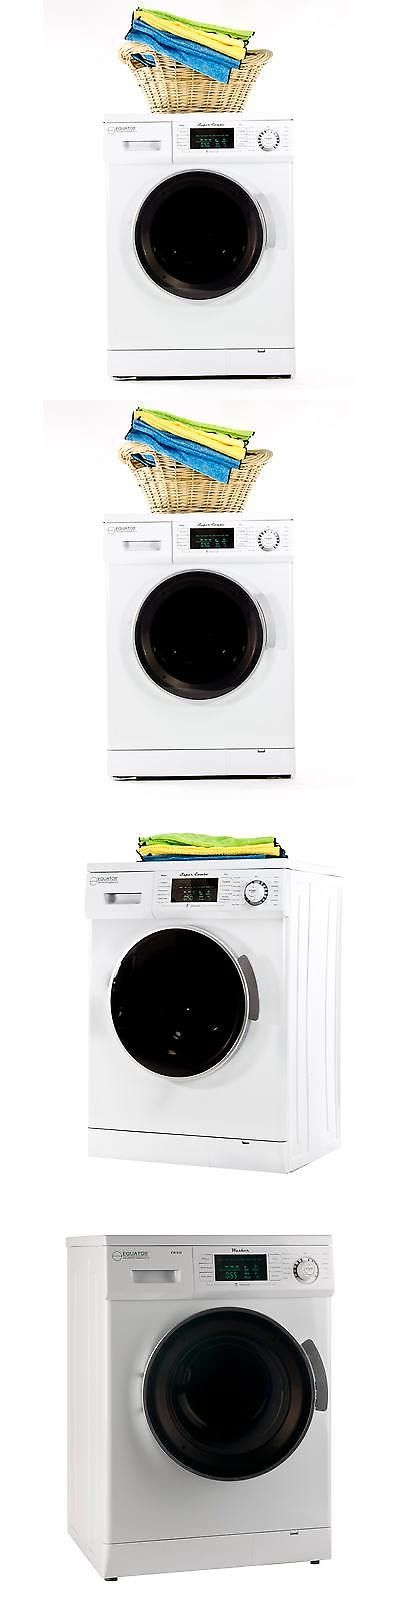 Washer and Dryer Sets 71257: 1.6 Cu. Ft. Compact Combo Washer And Electric Dryer With Optional -> BUY IT NOW ONLY: $1076.49 on eBay!